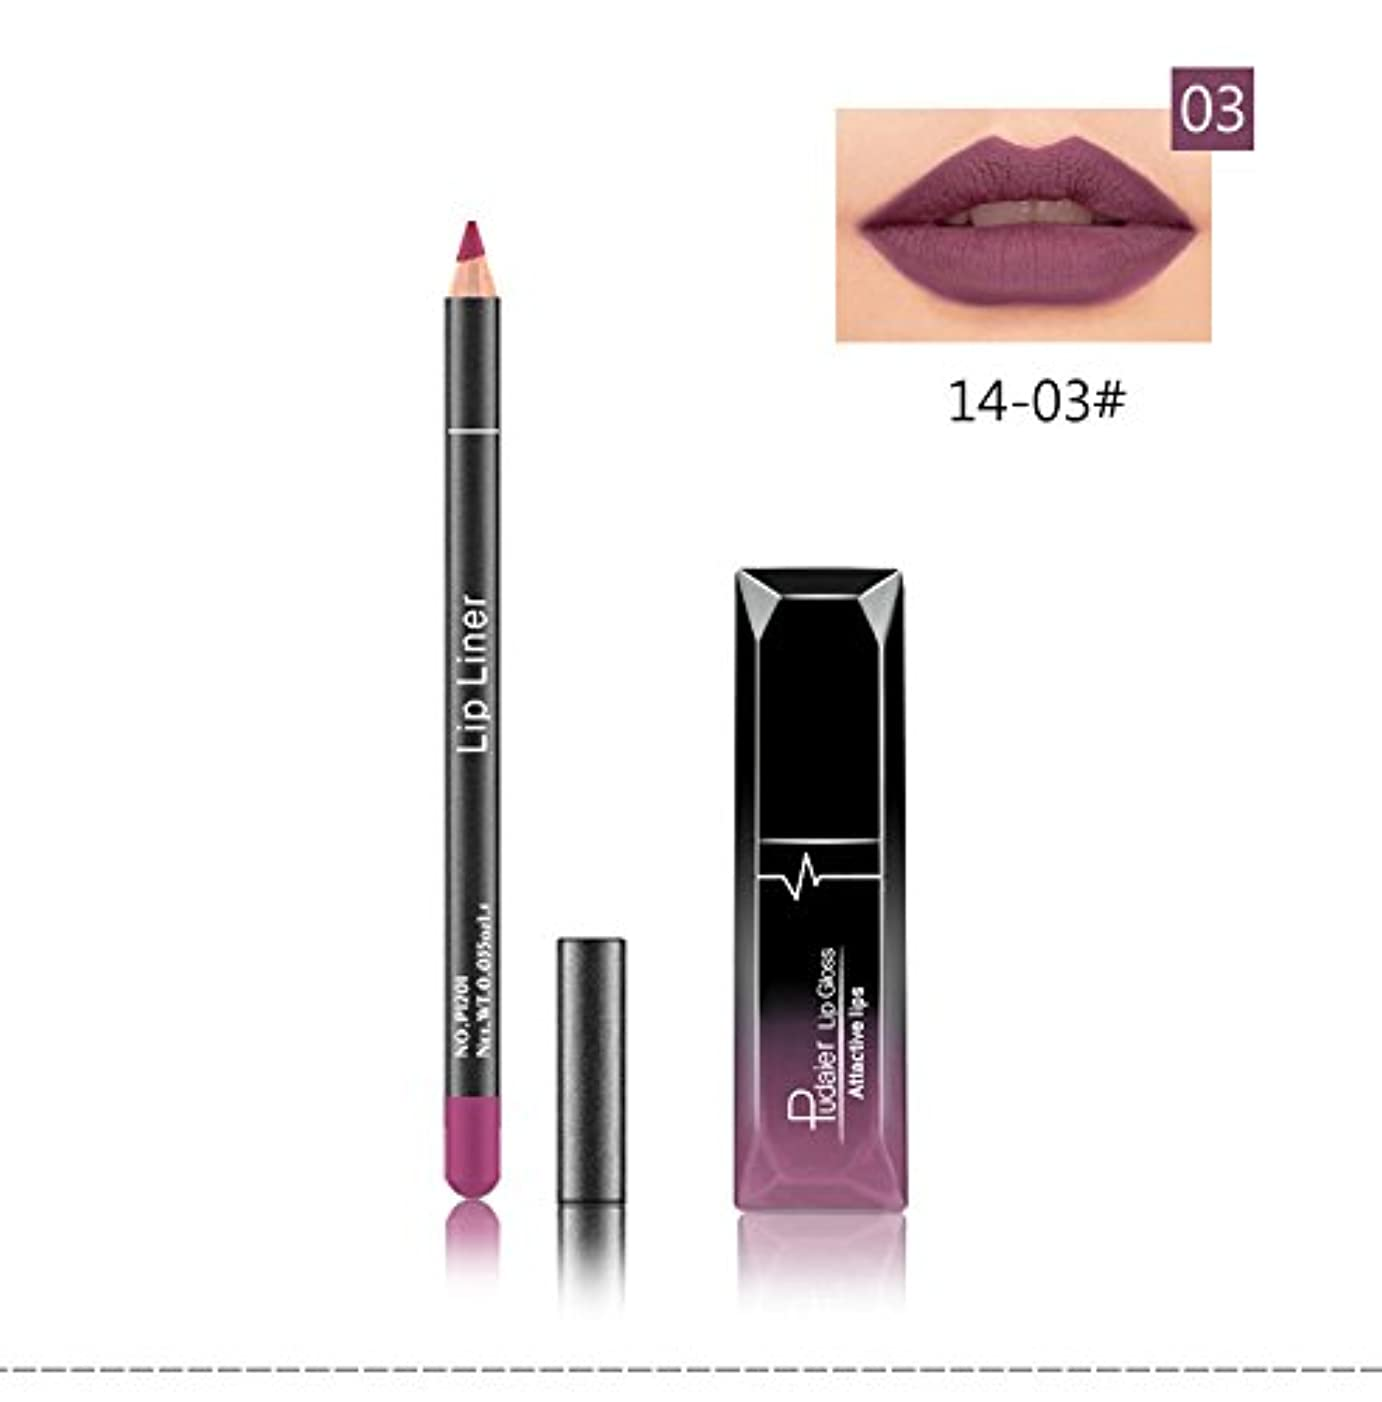 ソファーミリメートル意図する(03) Pudaier 1pc Matte Liquid Lipstick Cosmetic Lip Kit+ 1 Pc Nude Lip Liner Pencil MakeUp Set Waterproof Long...